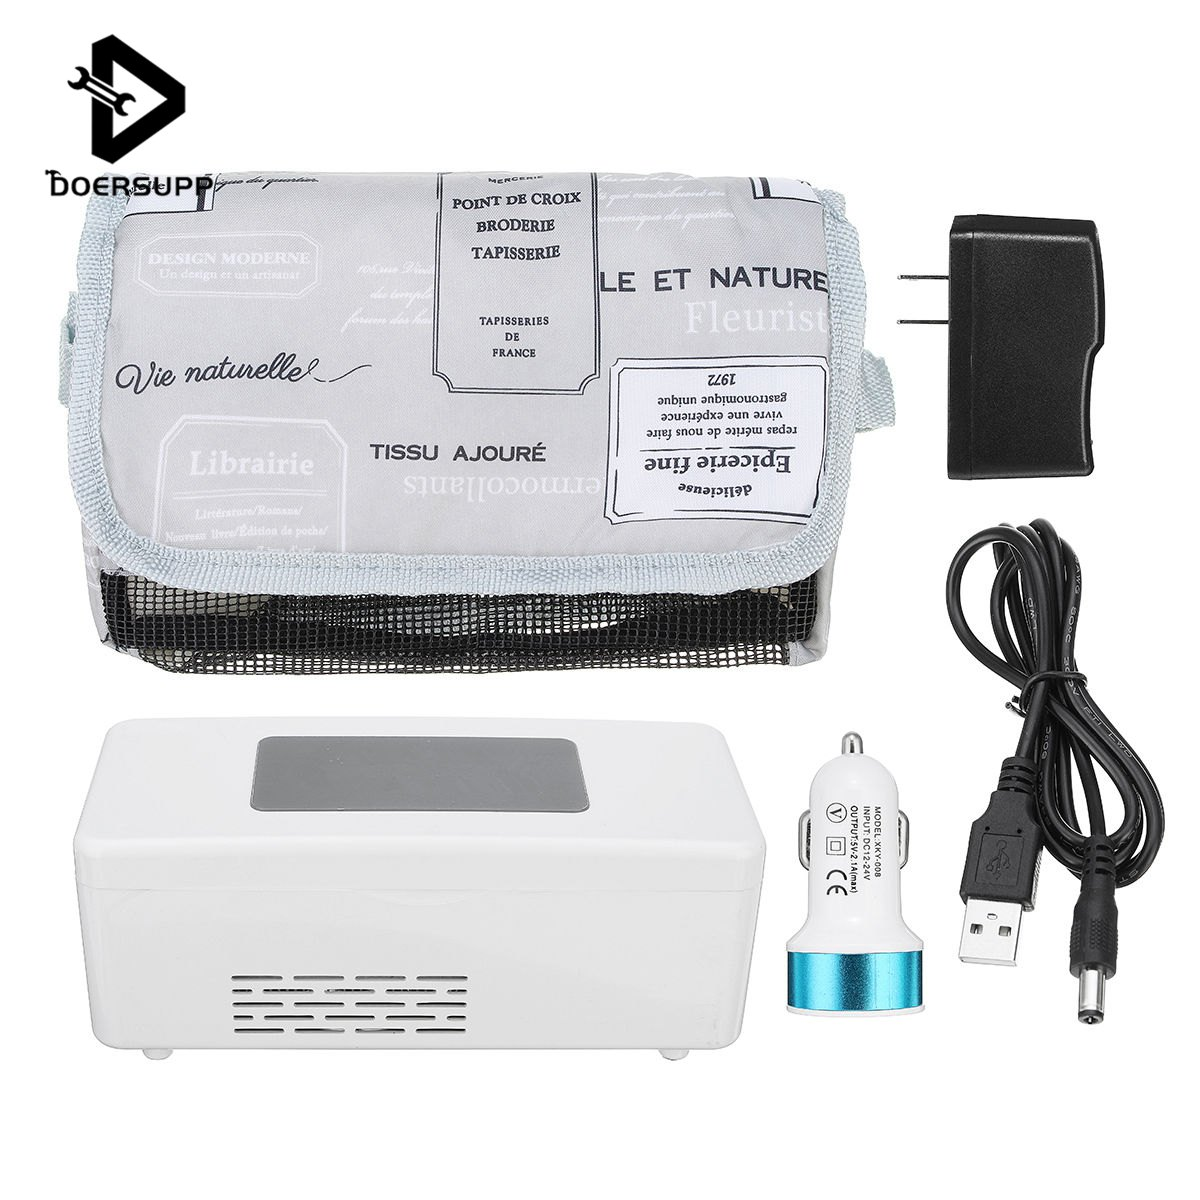 Doersupp Rechargeable Medicine Refrigerators Portable mini insulin cooler box Portable Drug Reefer Car Small RefrigeratorDoersupp Rechargeable Medicine Refrigerators Portable mini insulin cooler box Portable Drug Reefer Car Small Refrigerator